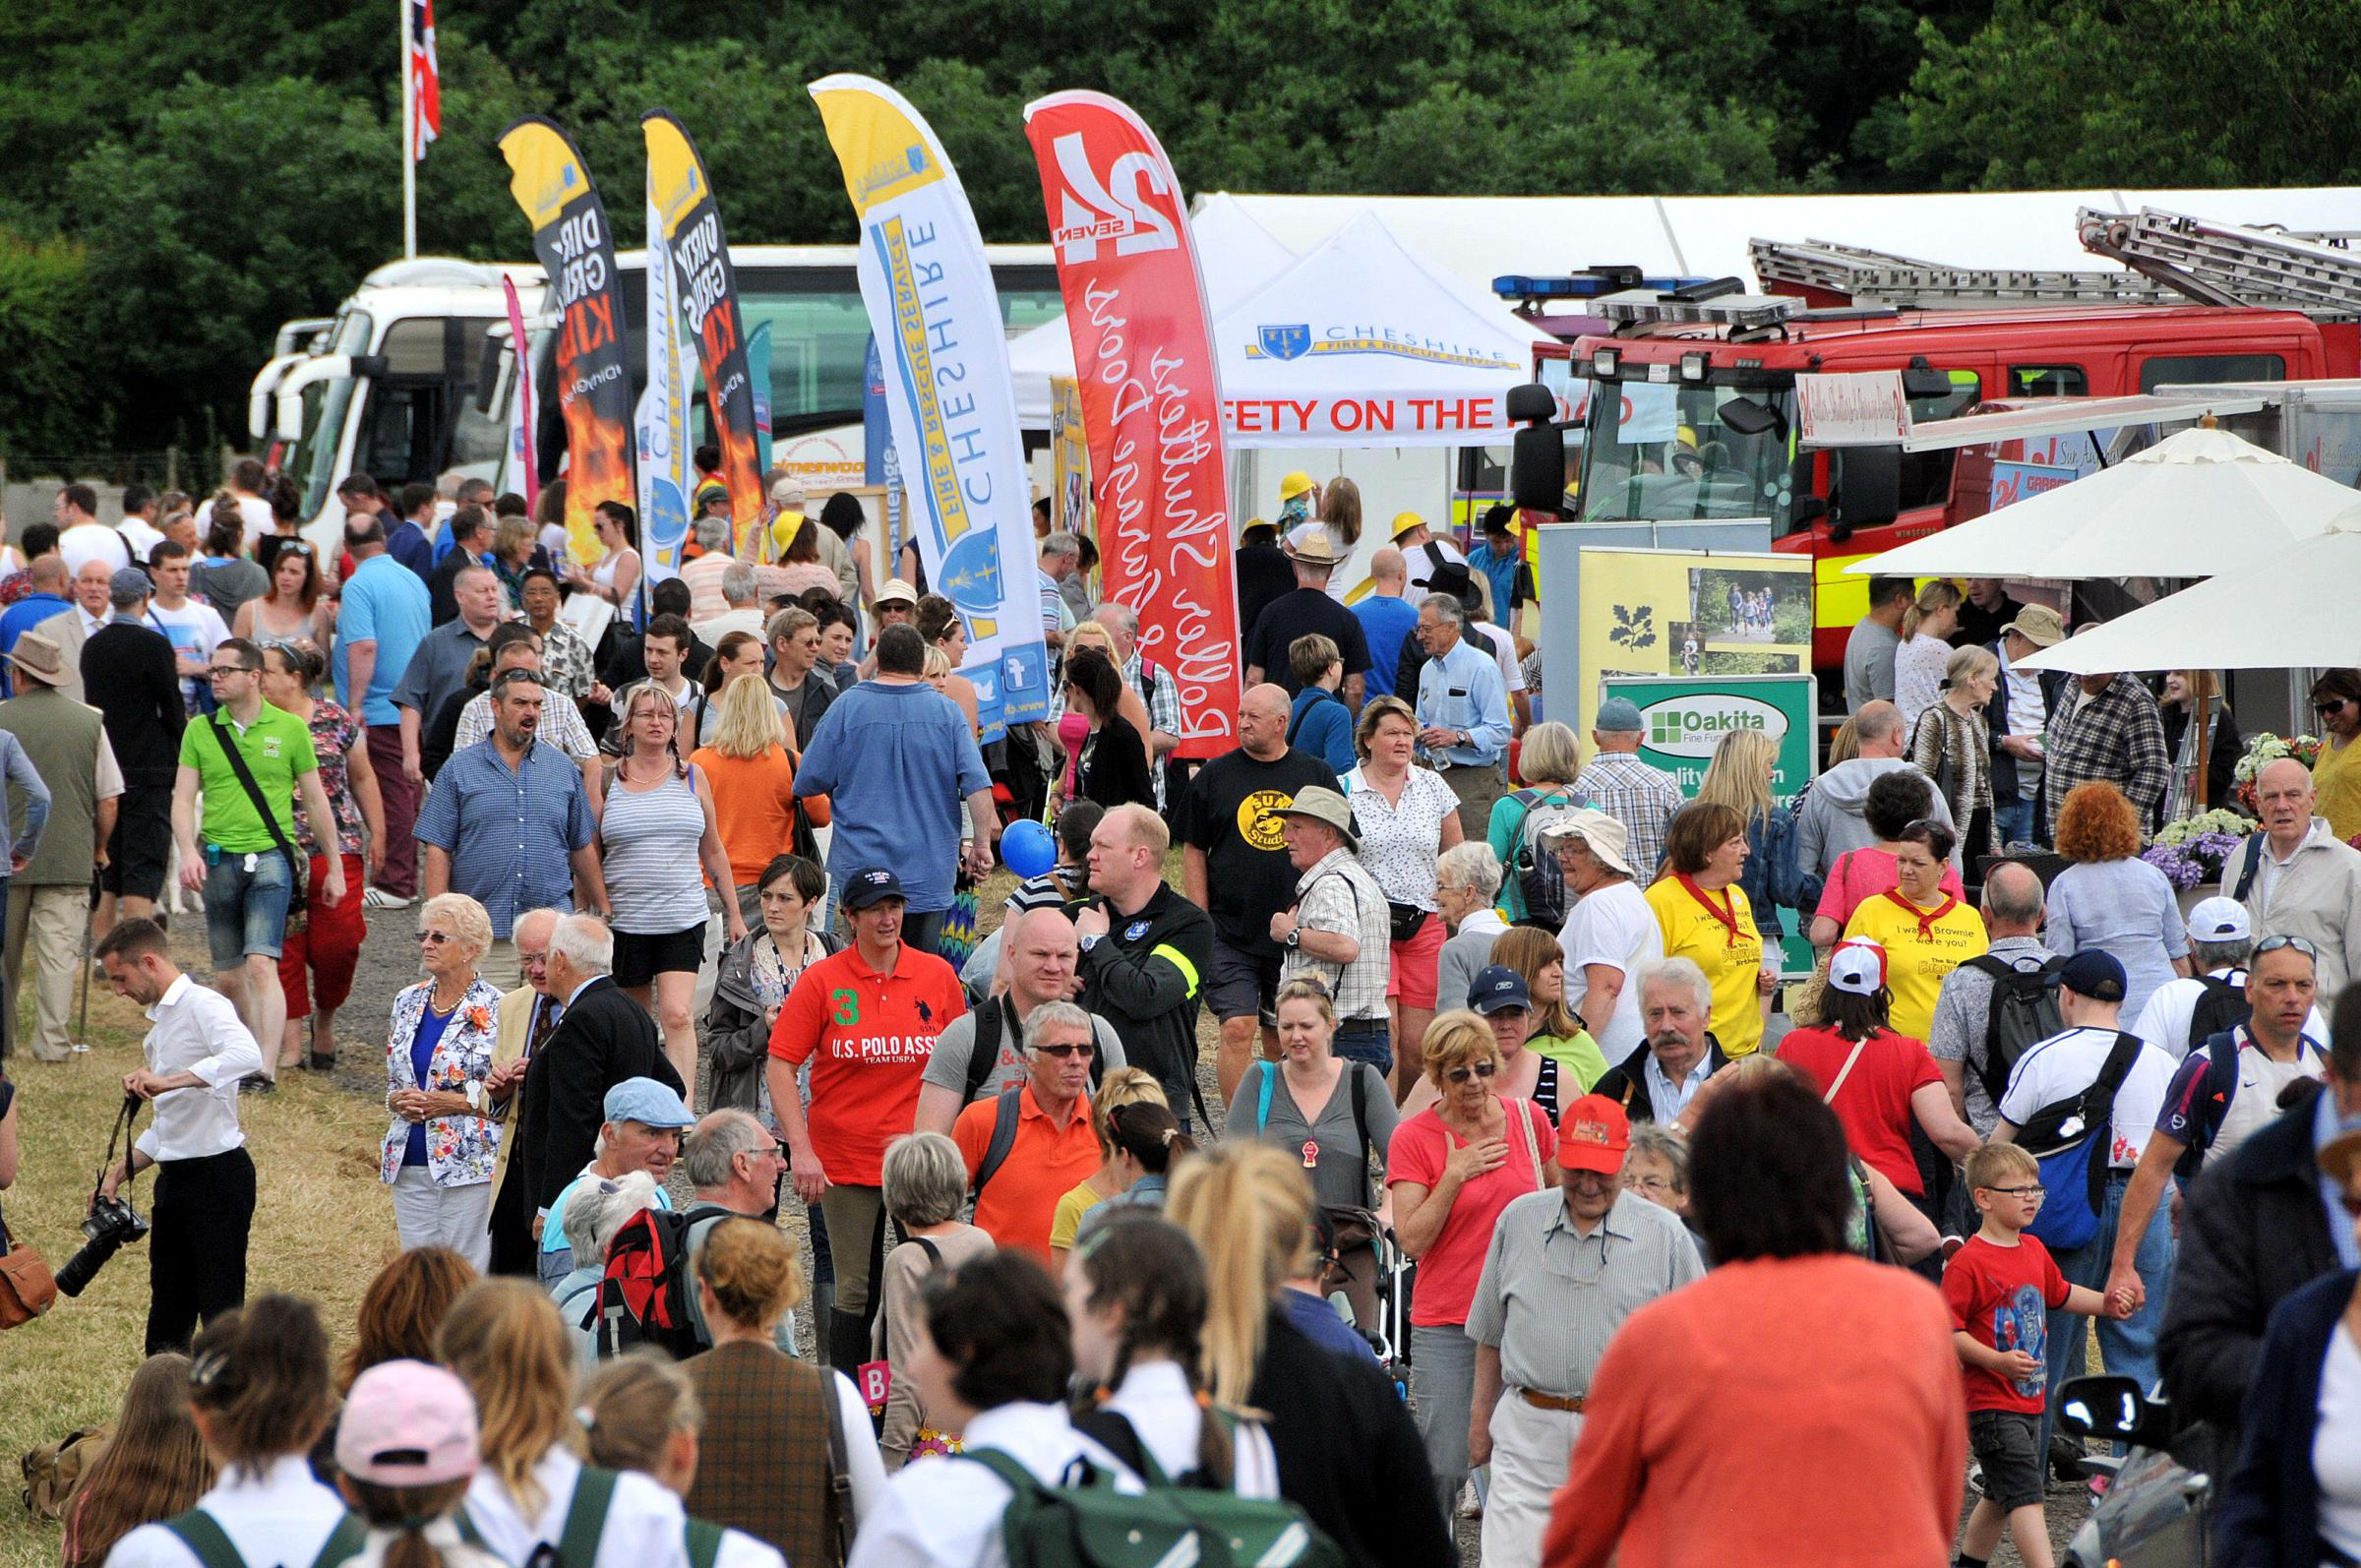 Thousands flock to Cheshire County Show 2014